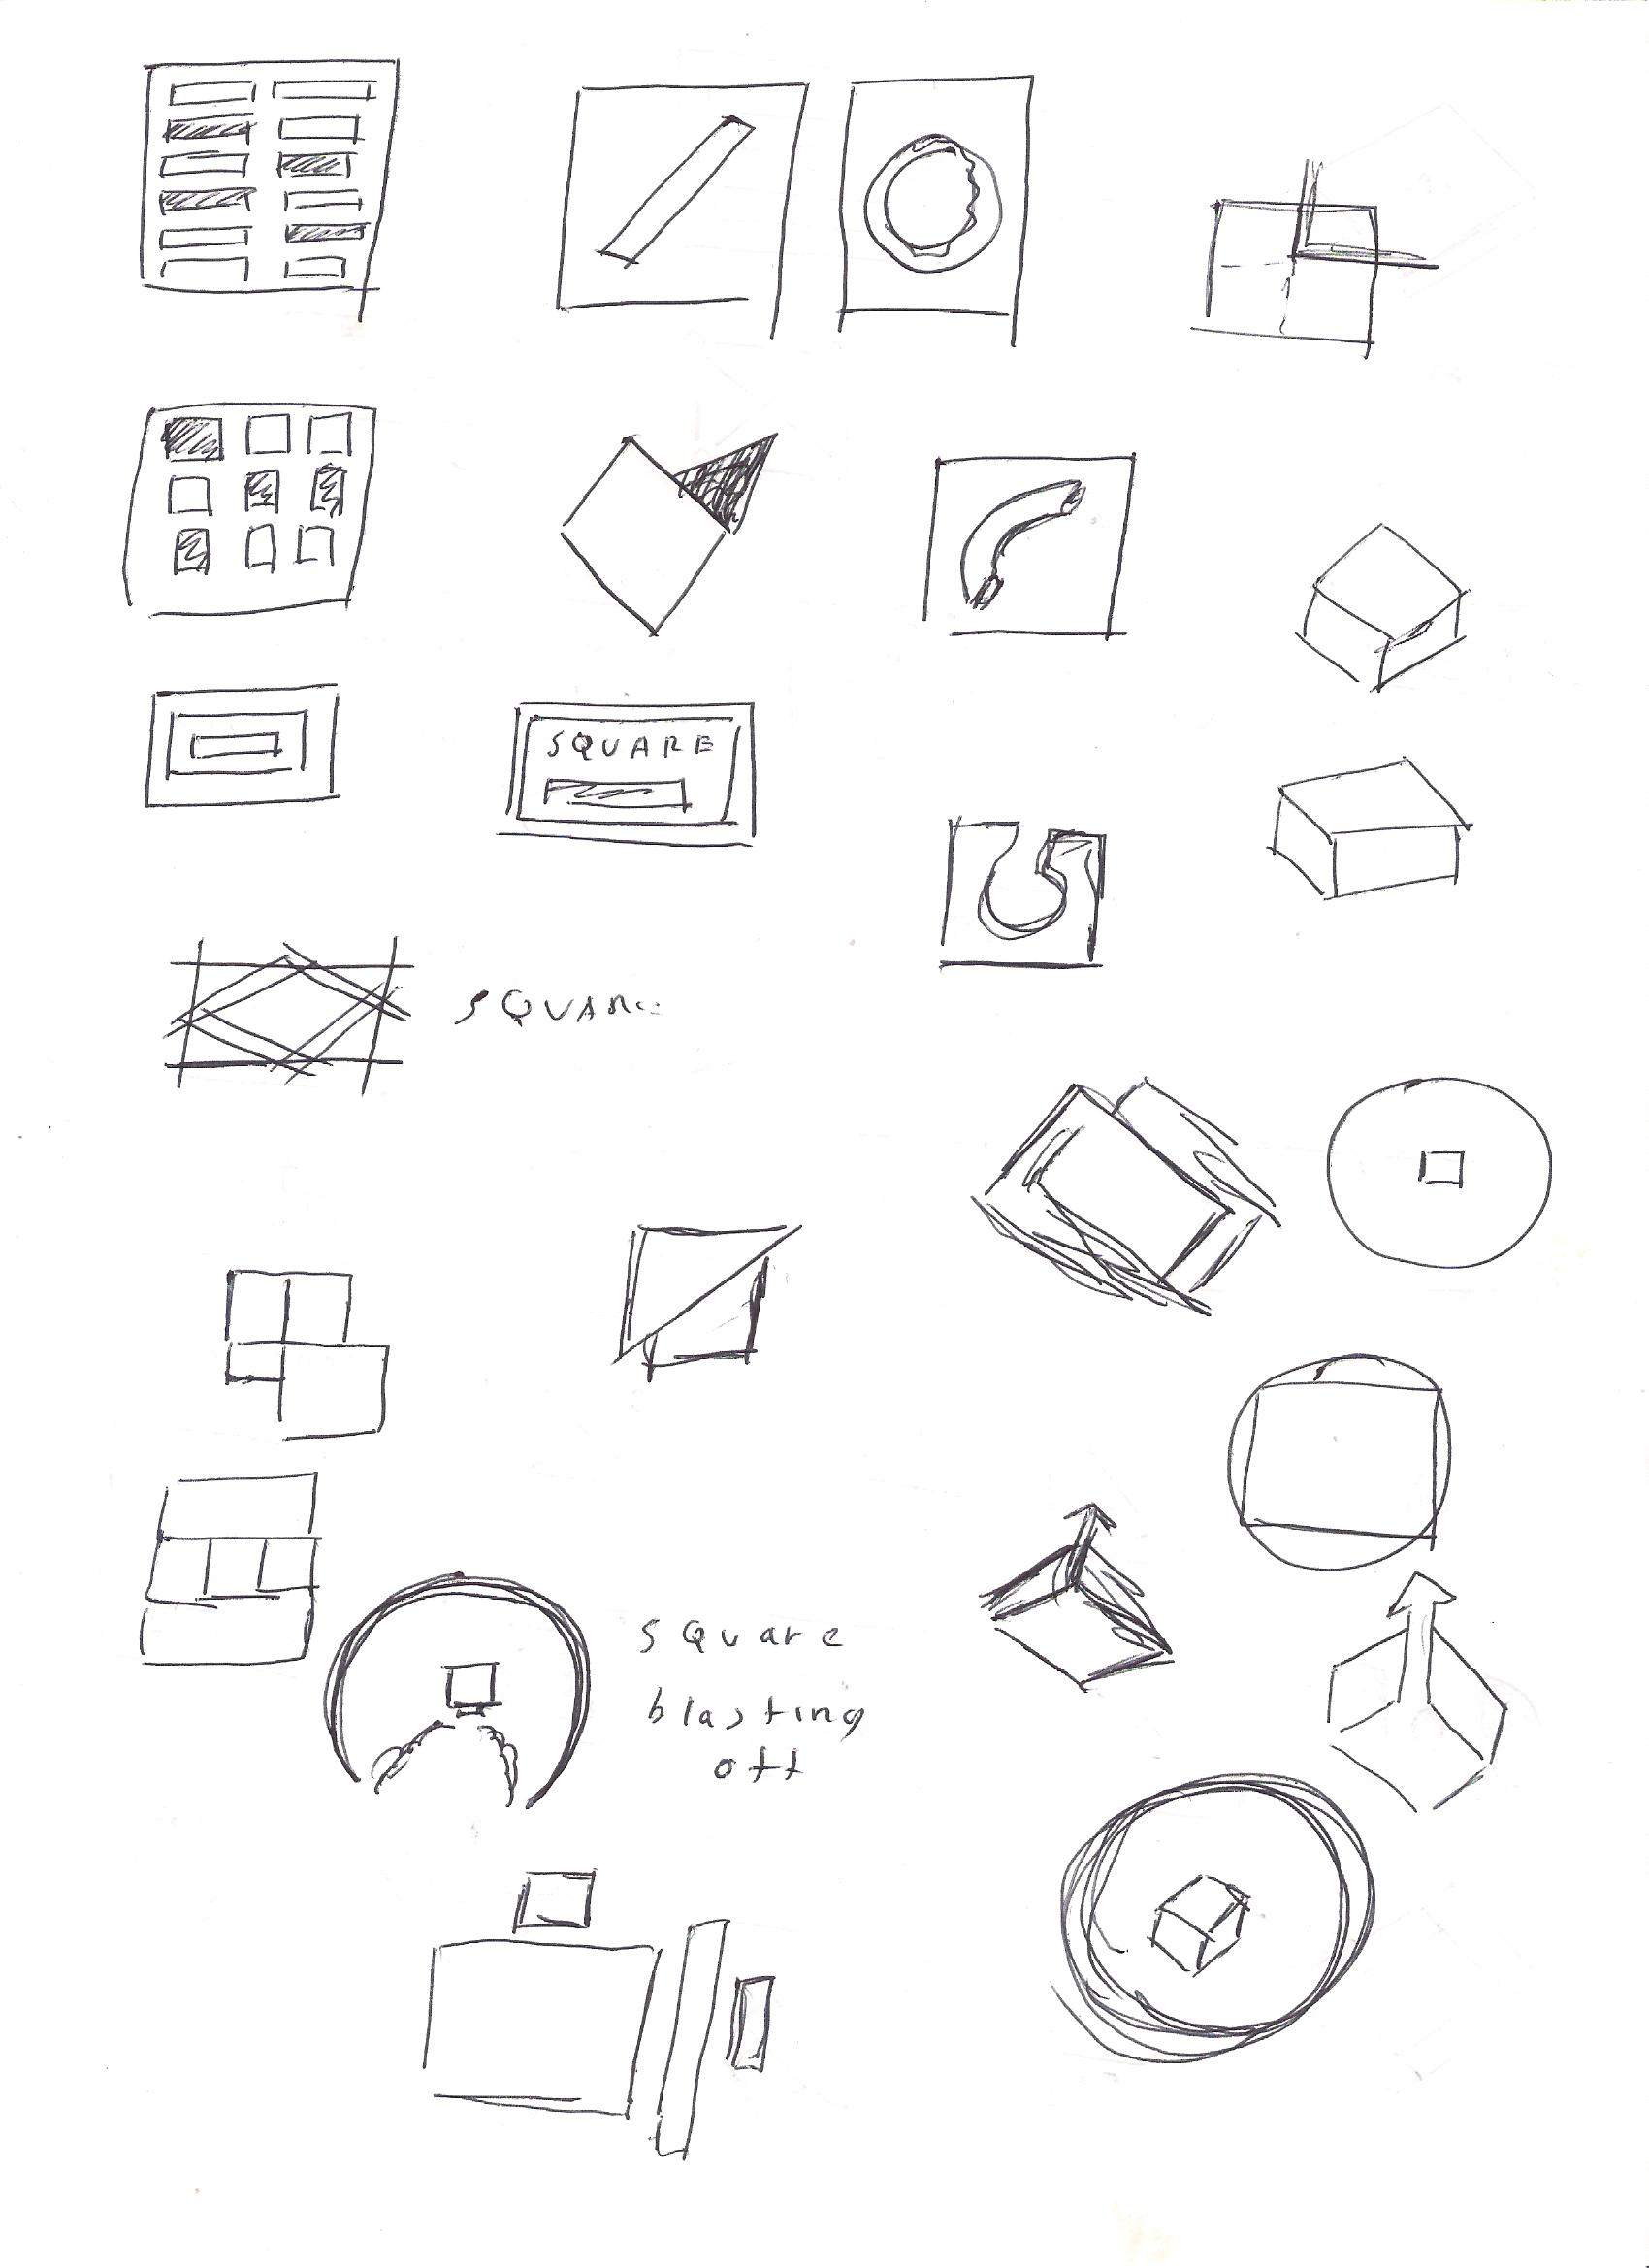 Square Design (Mood Boards)  - image 12 - student project